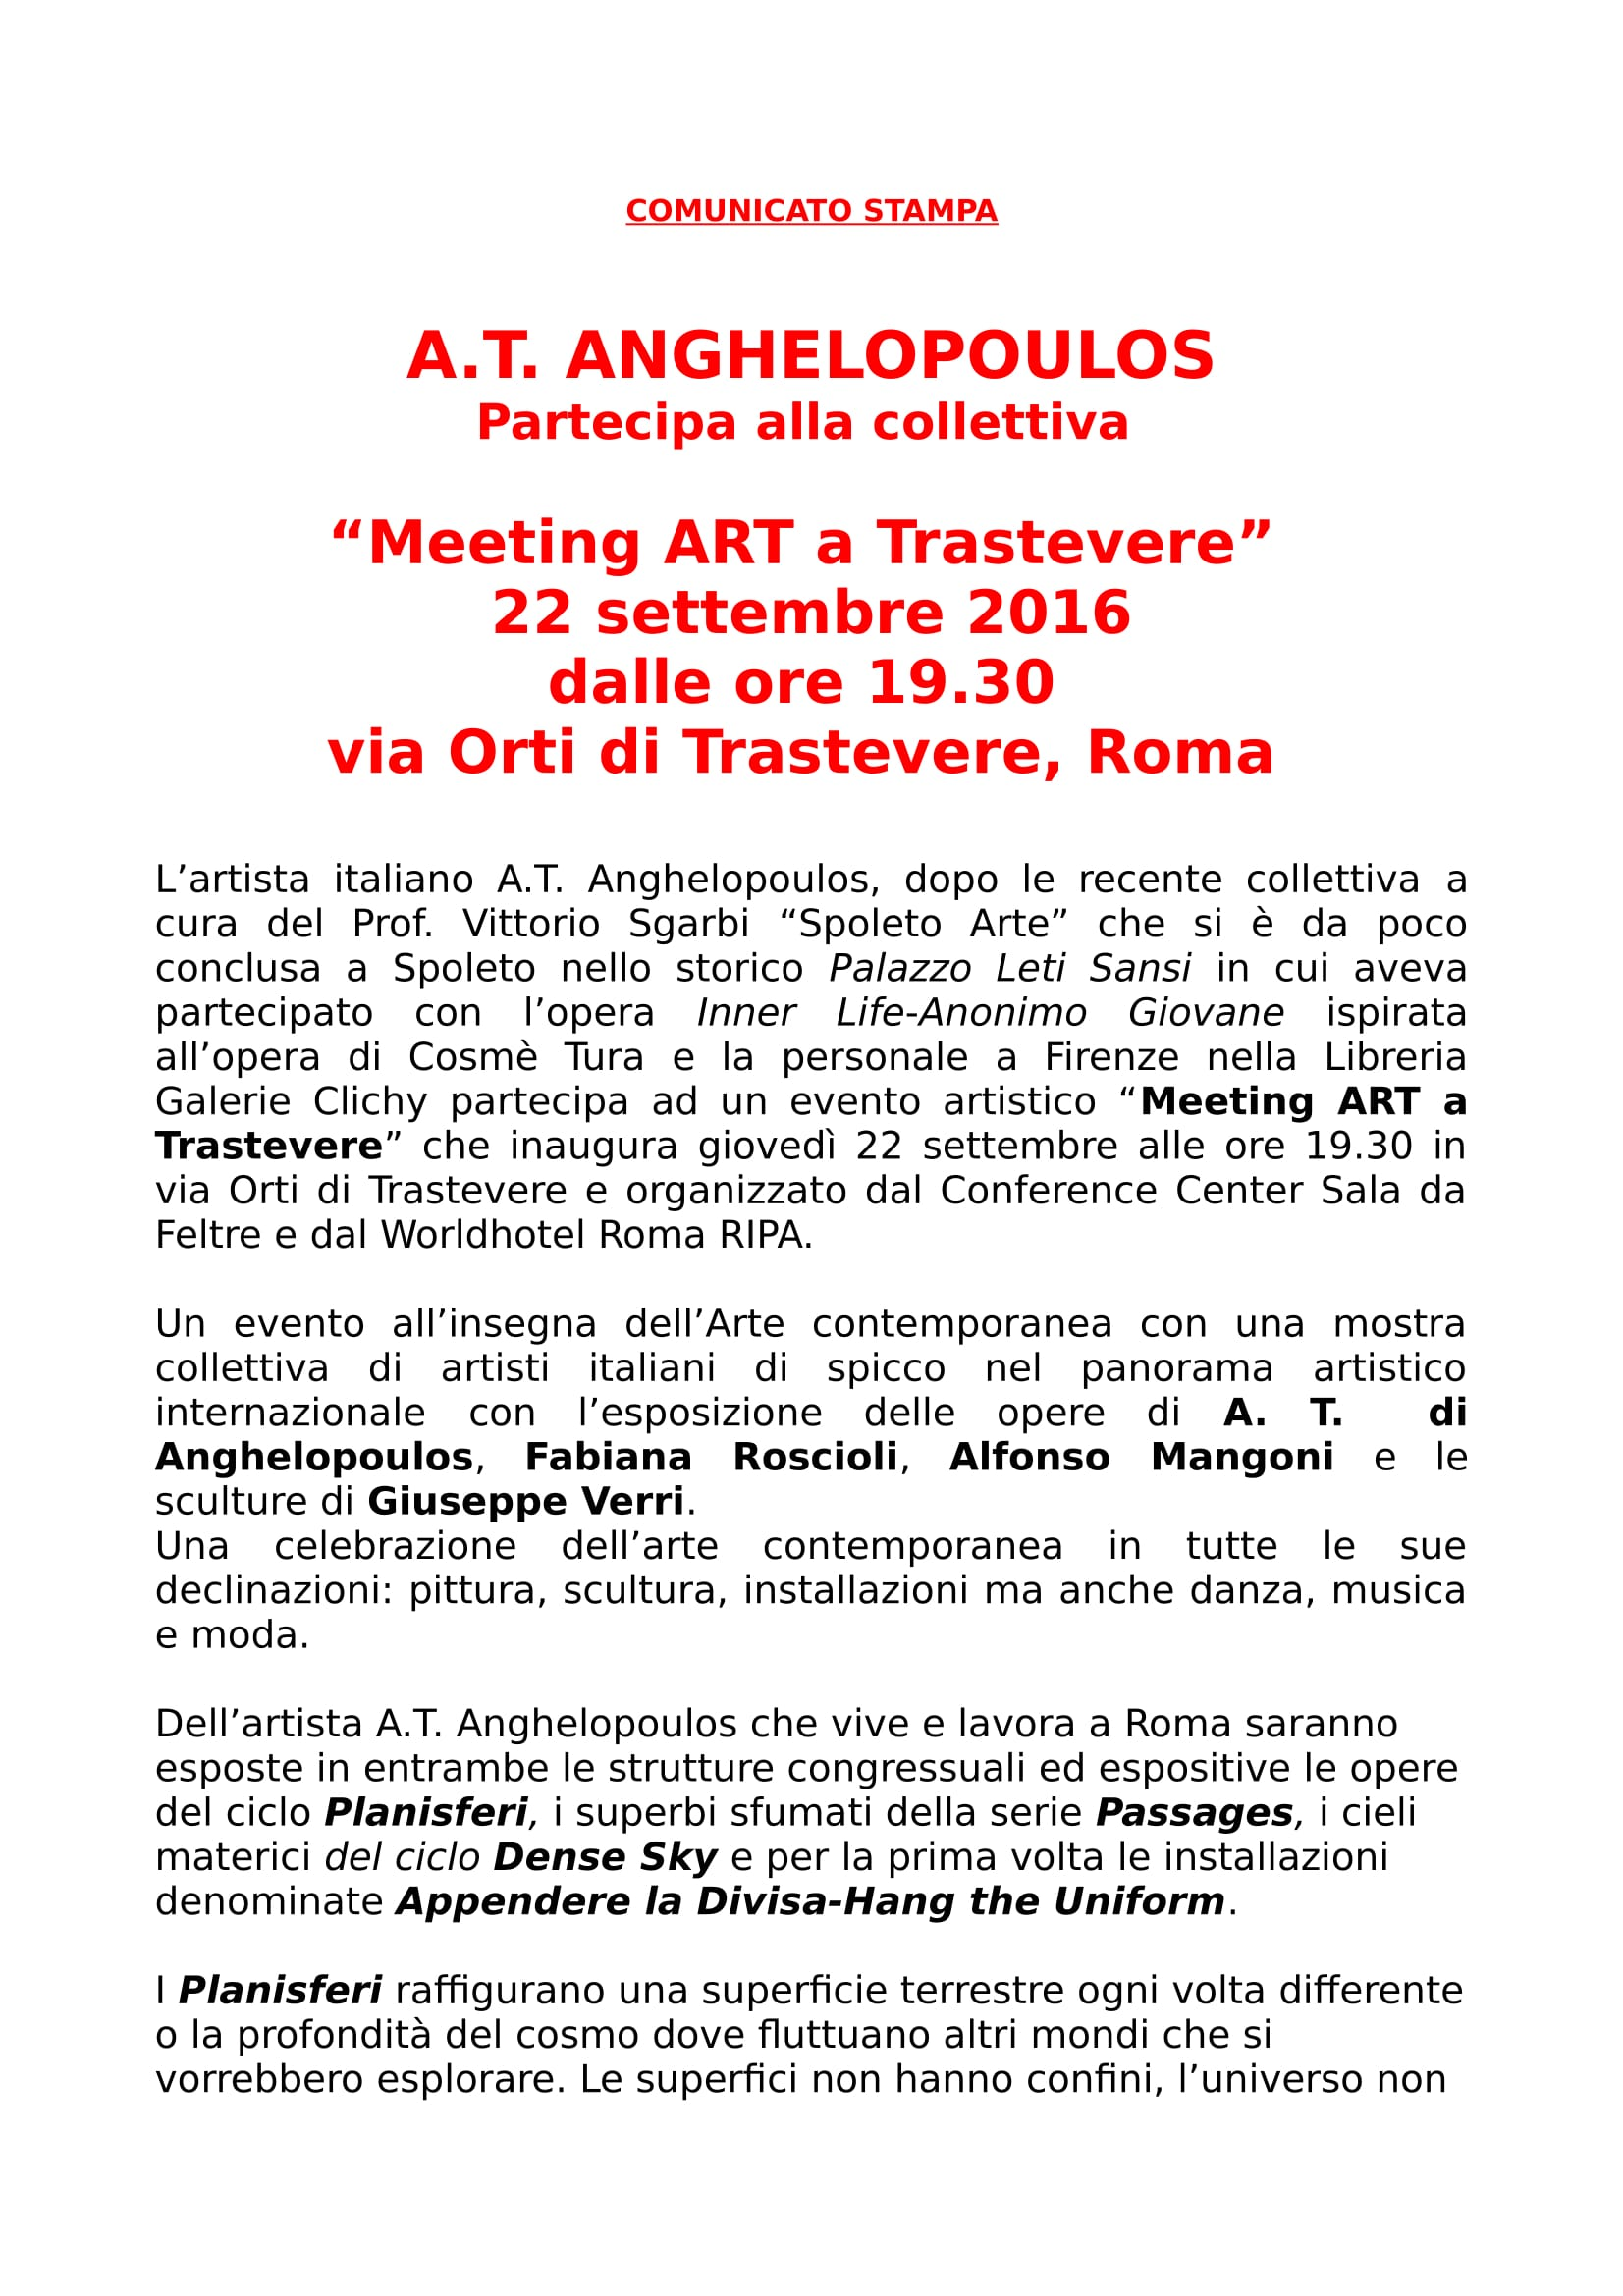 COM.STAMPA_A.T. Anghelopoulos_Trastevere-1